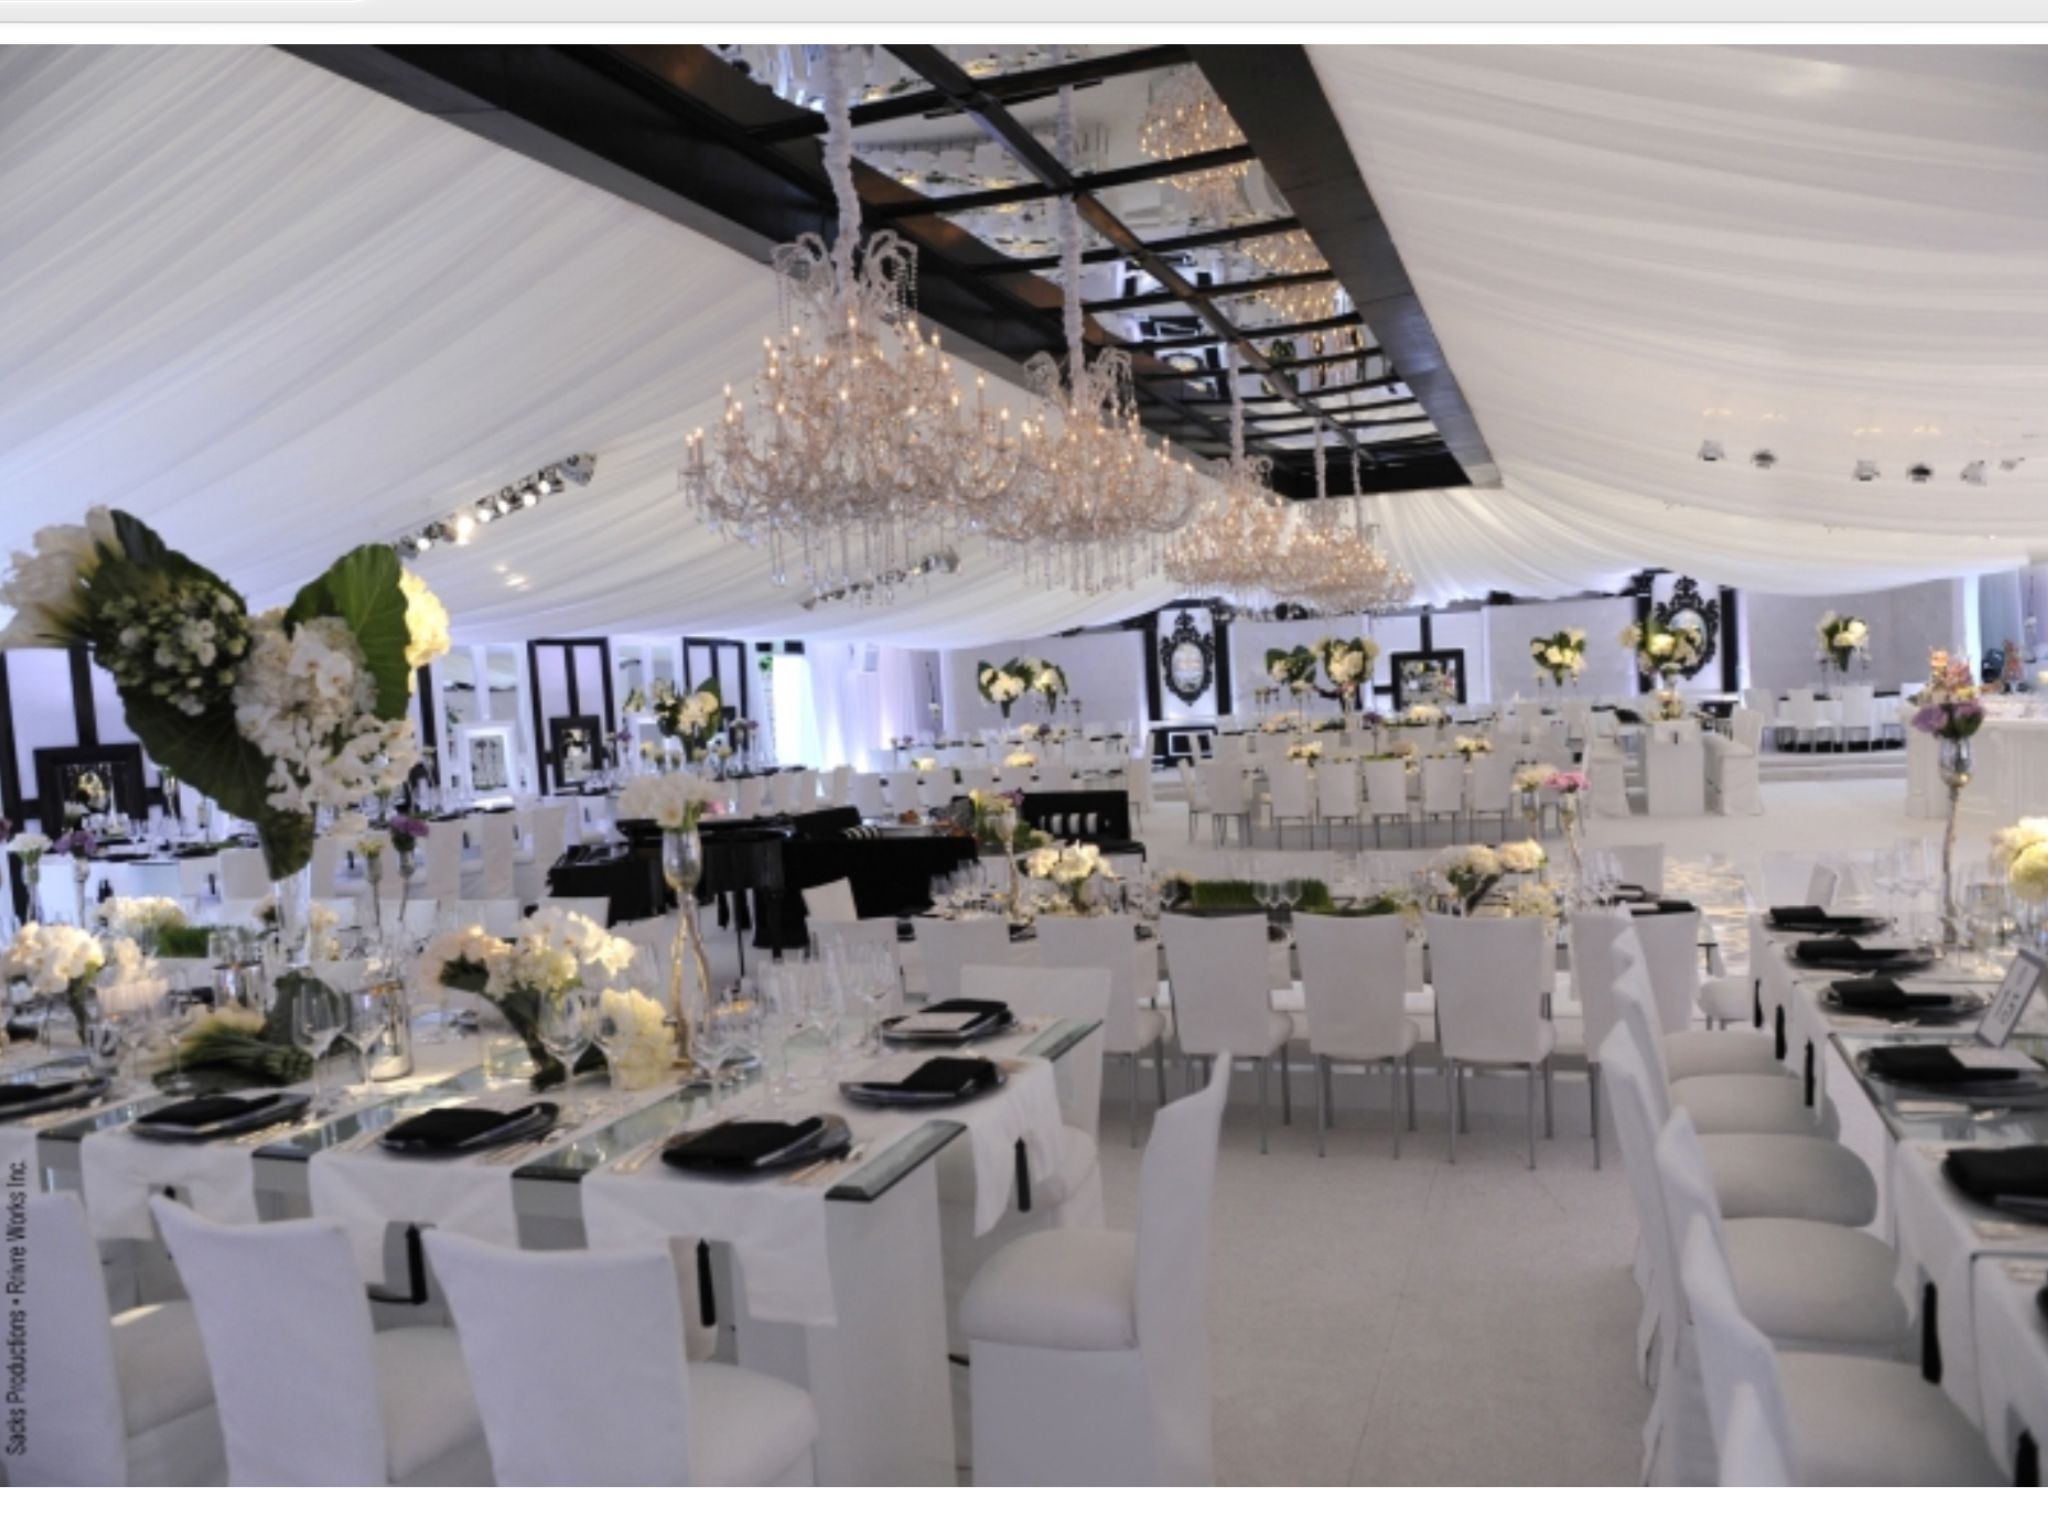 Khloe Kardashian Wedding Seriously My Wedding Right Here Kardashian Wedding Exclusive Wedding Decor